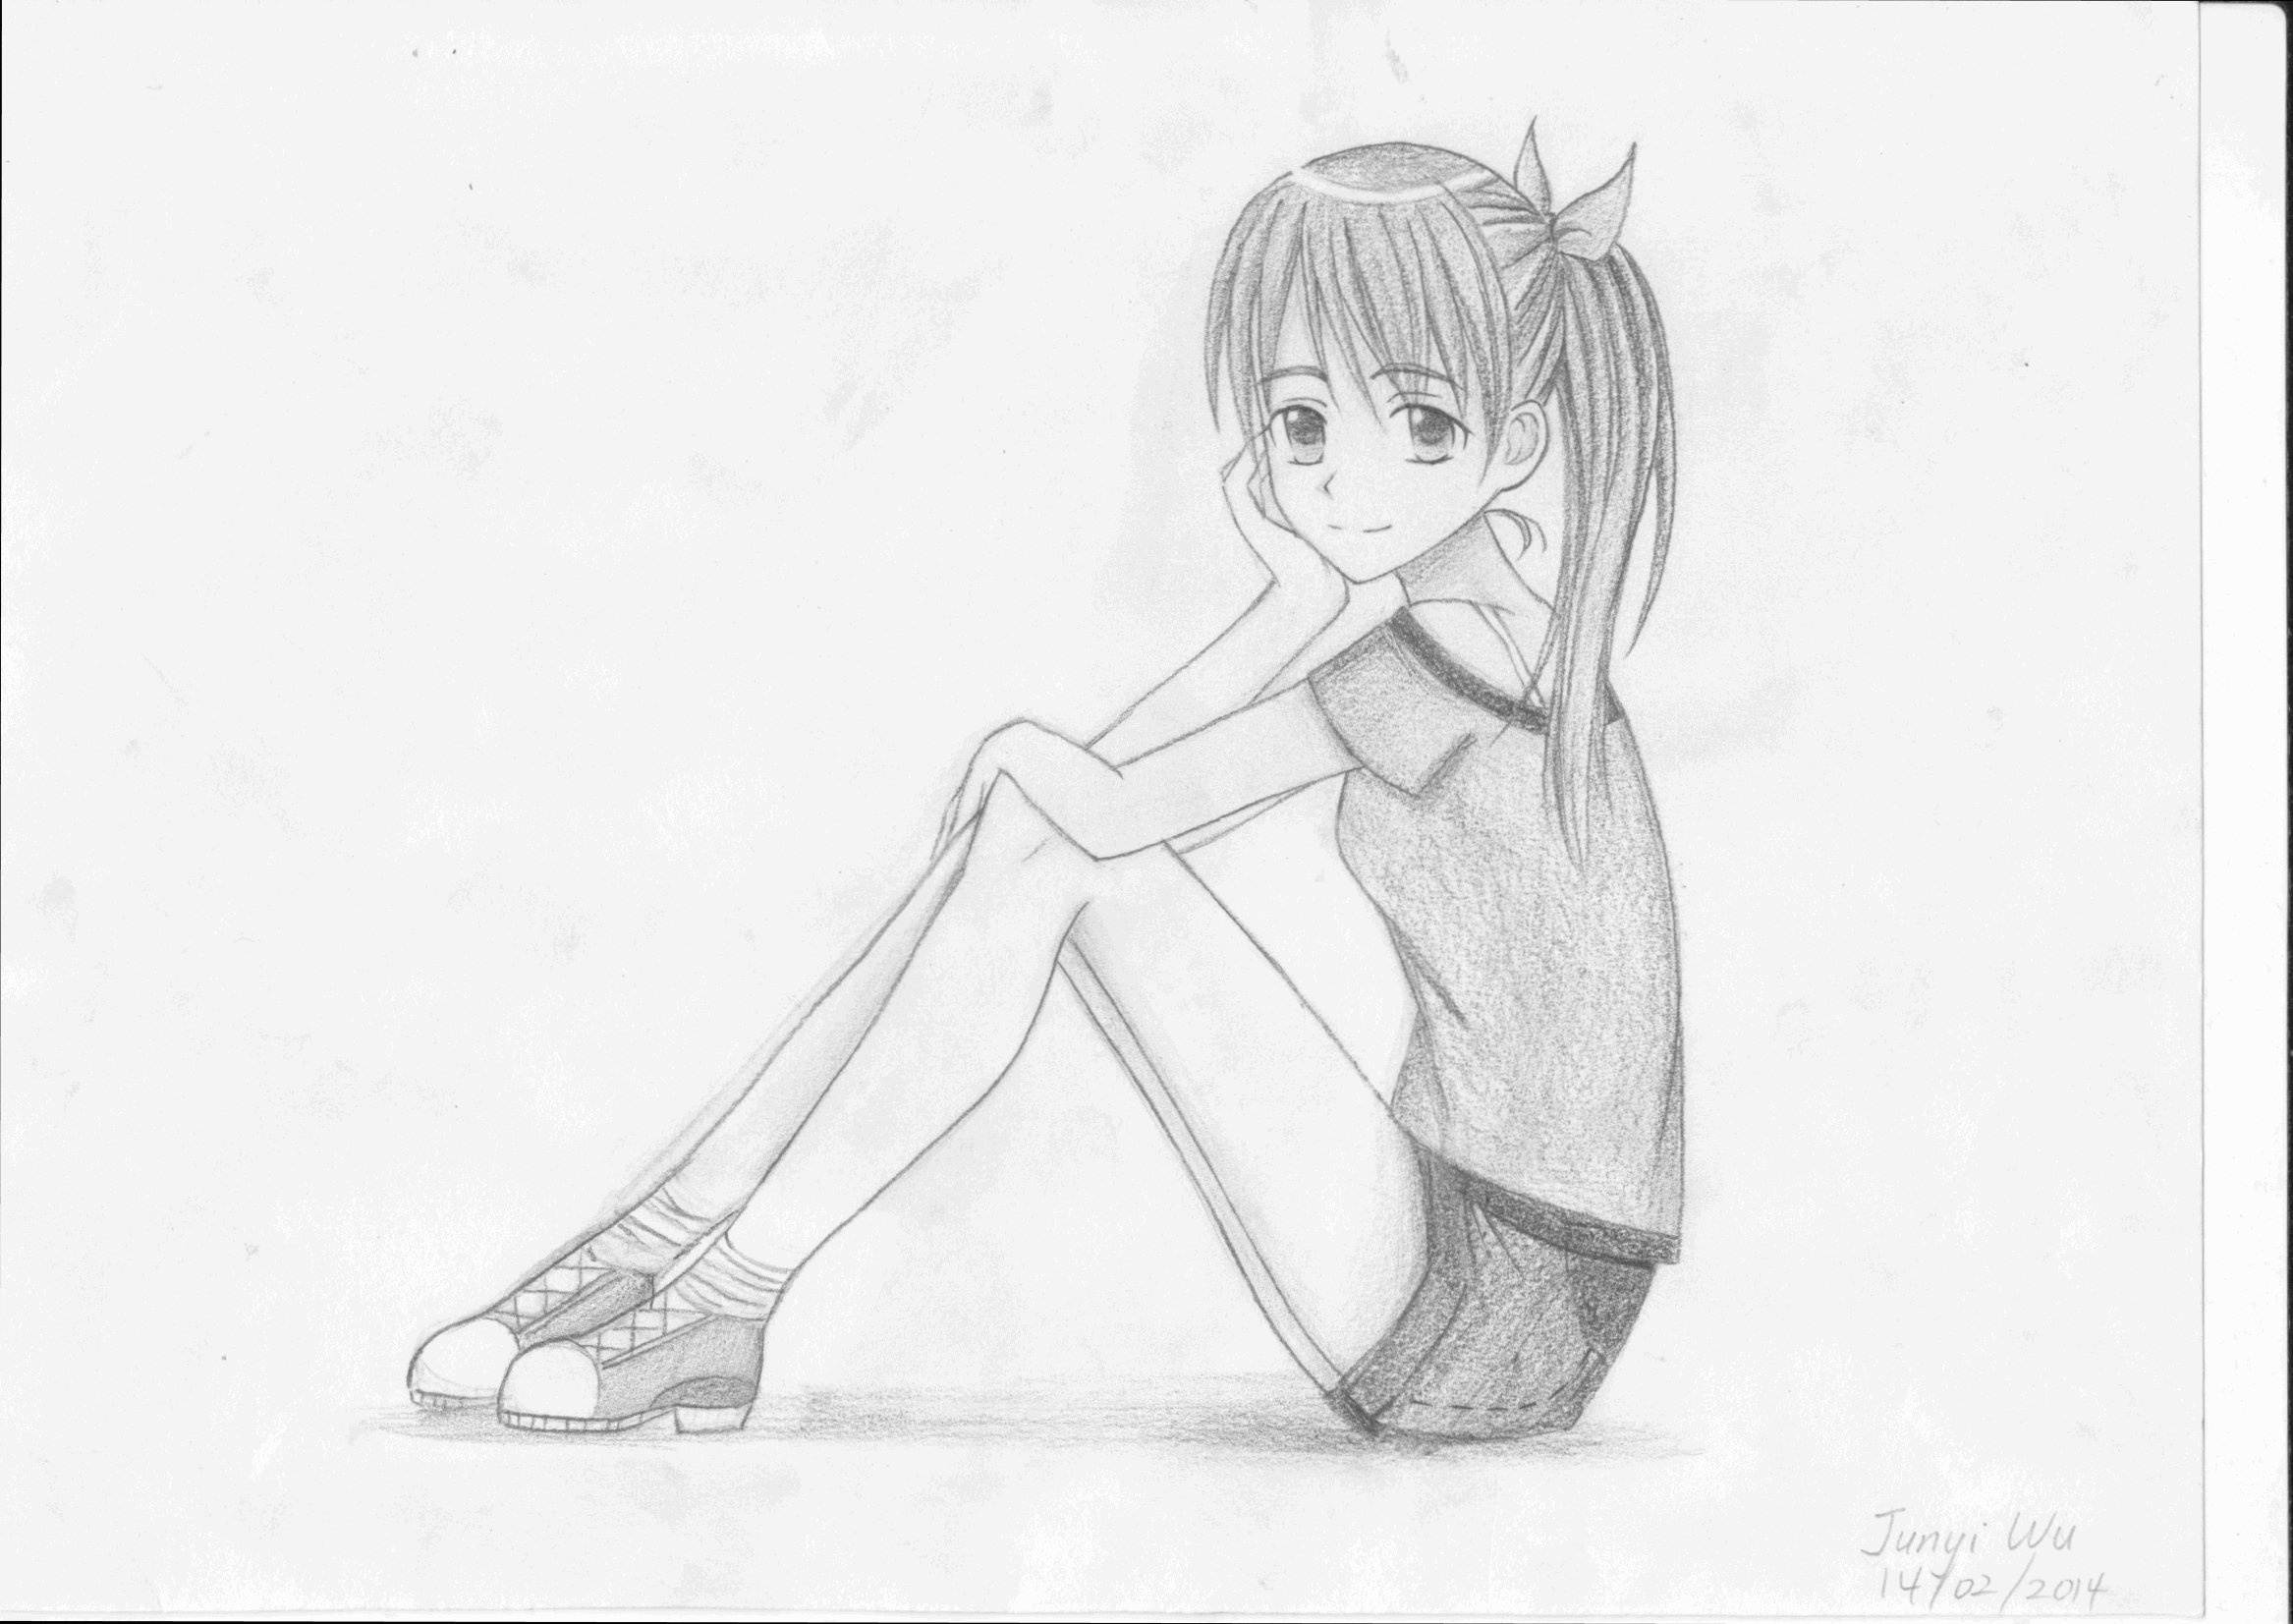 2334x1653 Girl Sitting Sketch Drawing A Sketch Of A Girl Sitting Barefoot